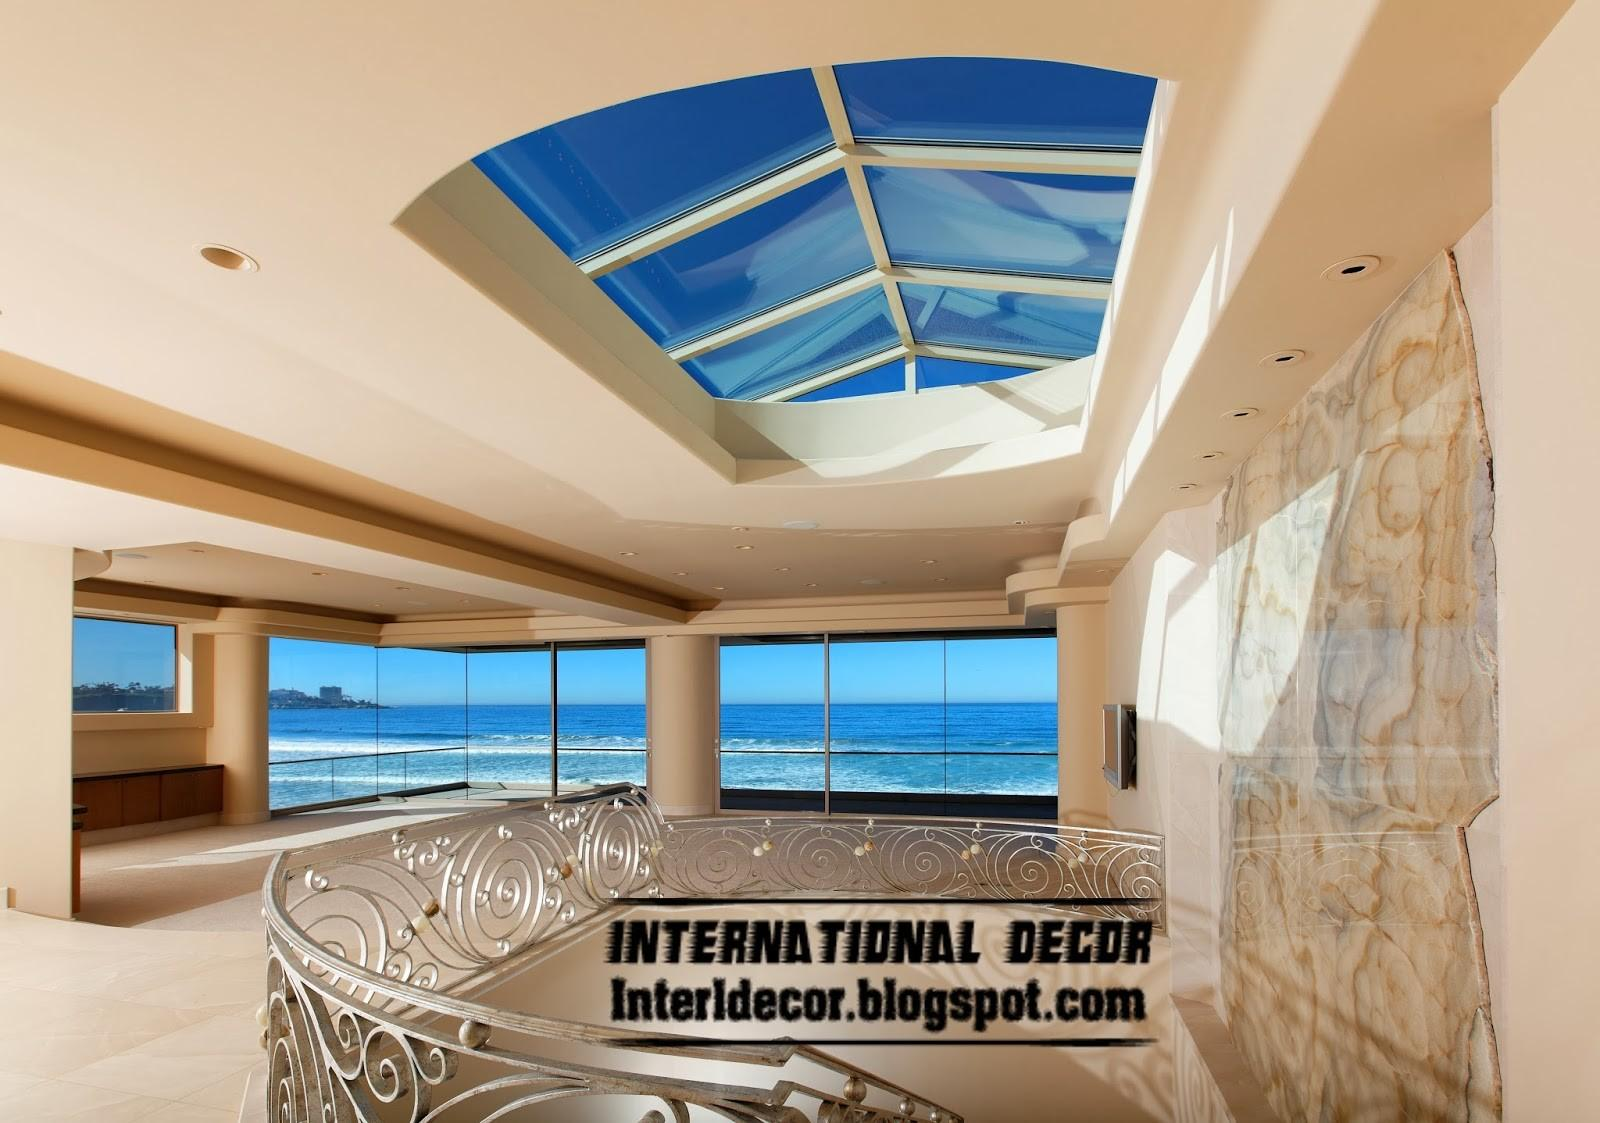 Skylight Roof Windows Designs Types Homes